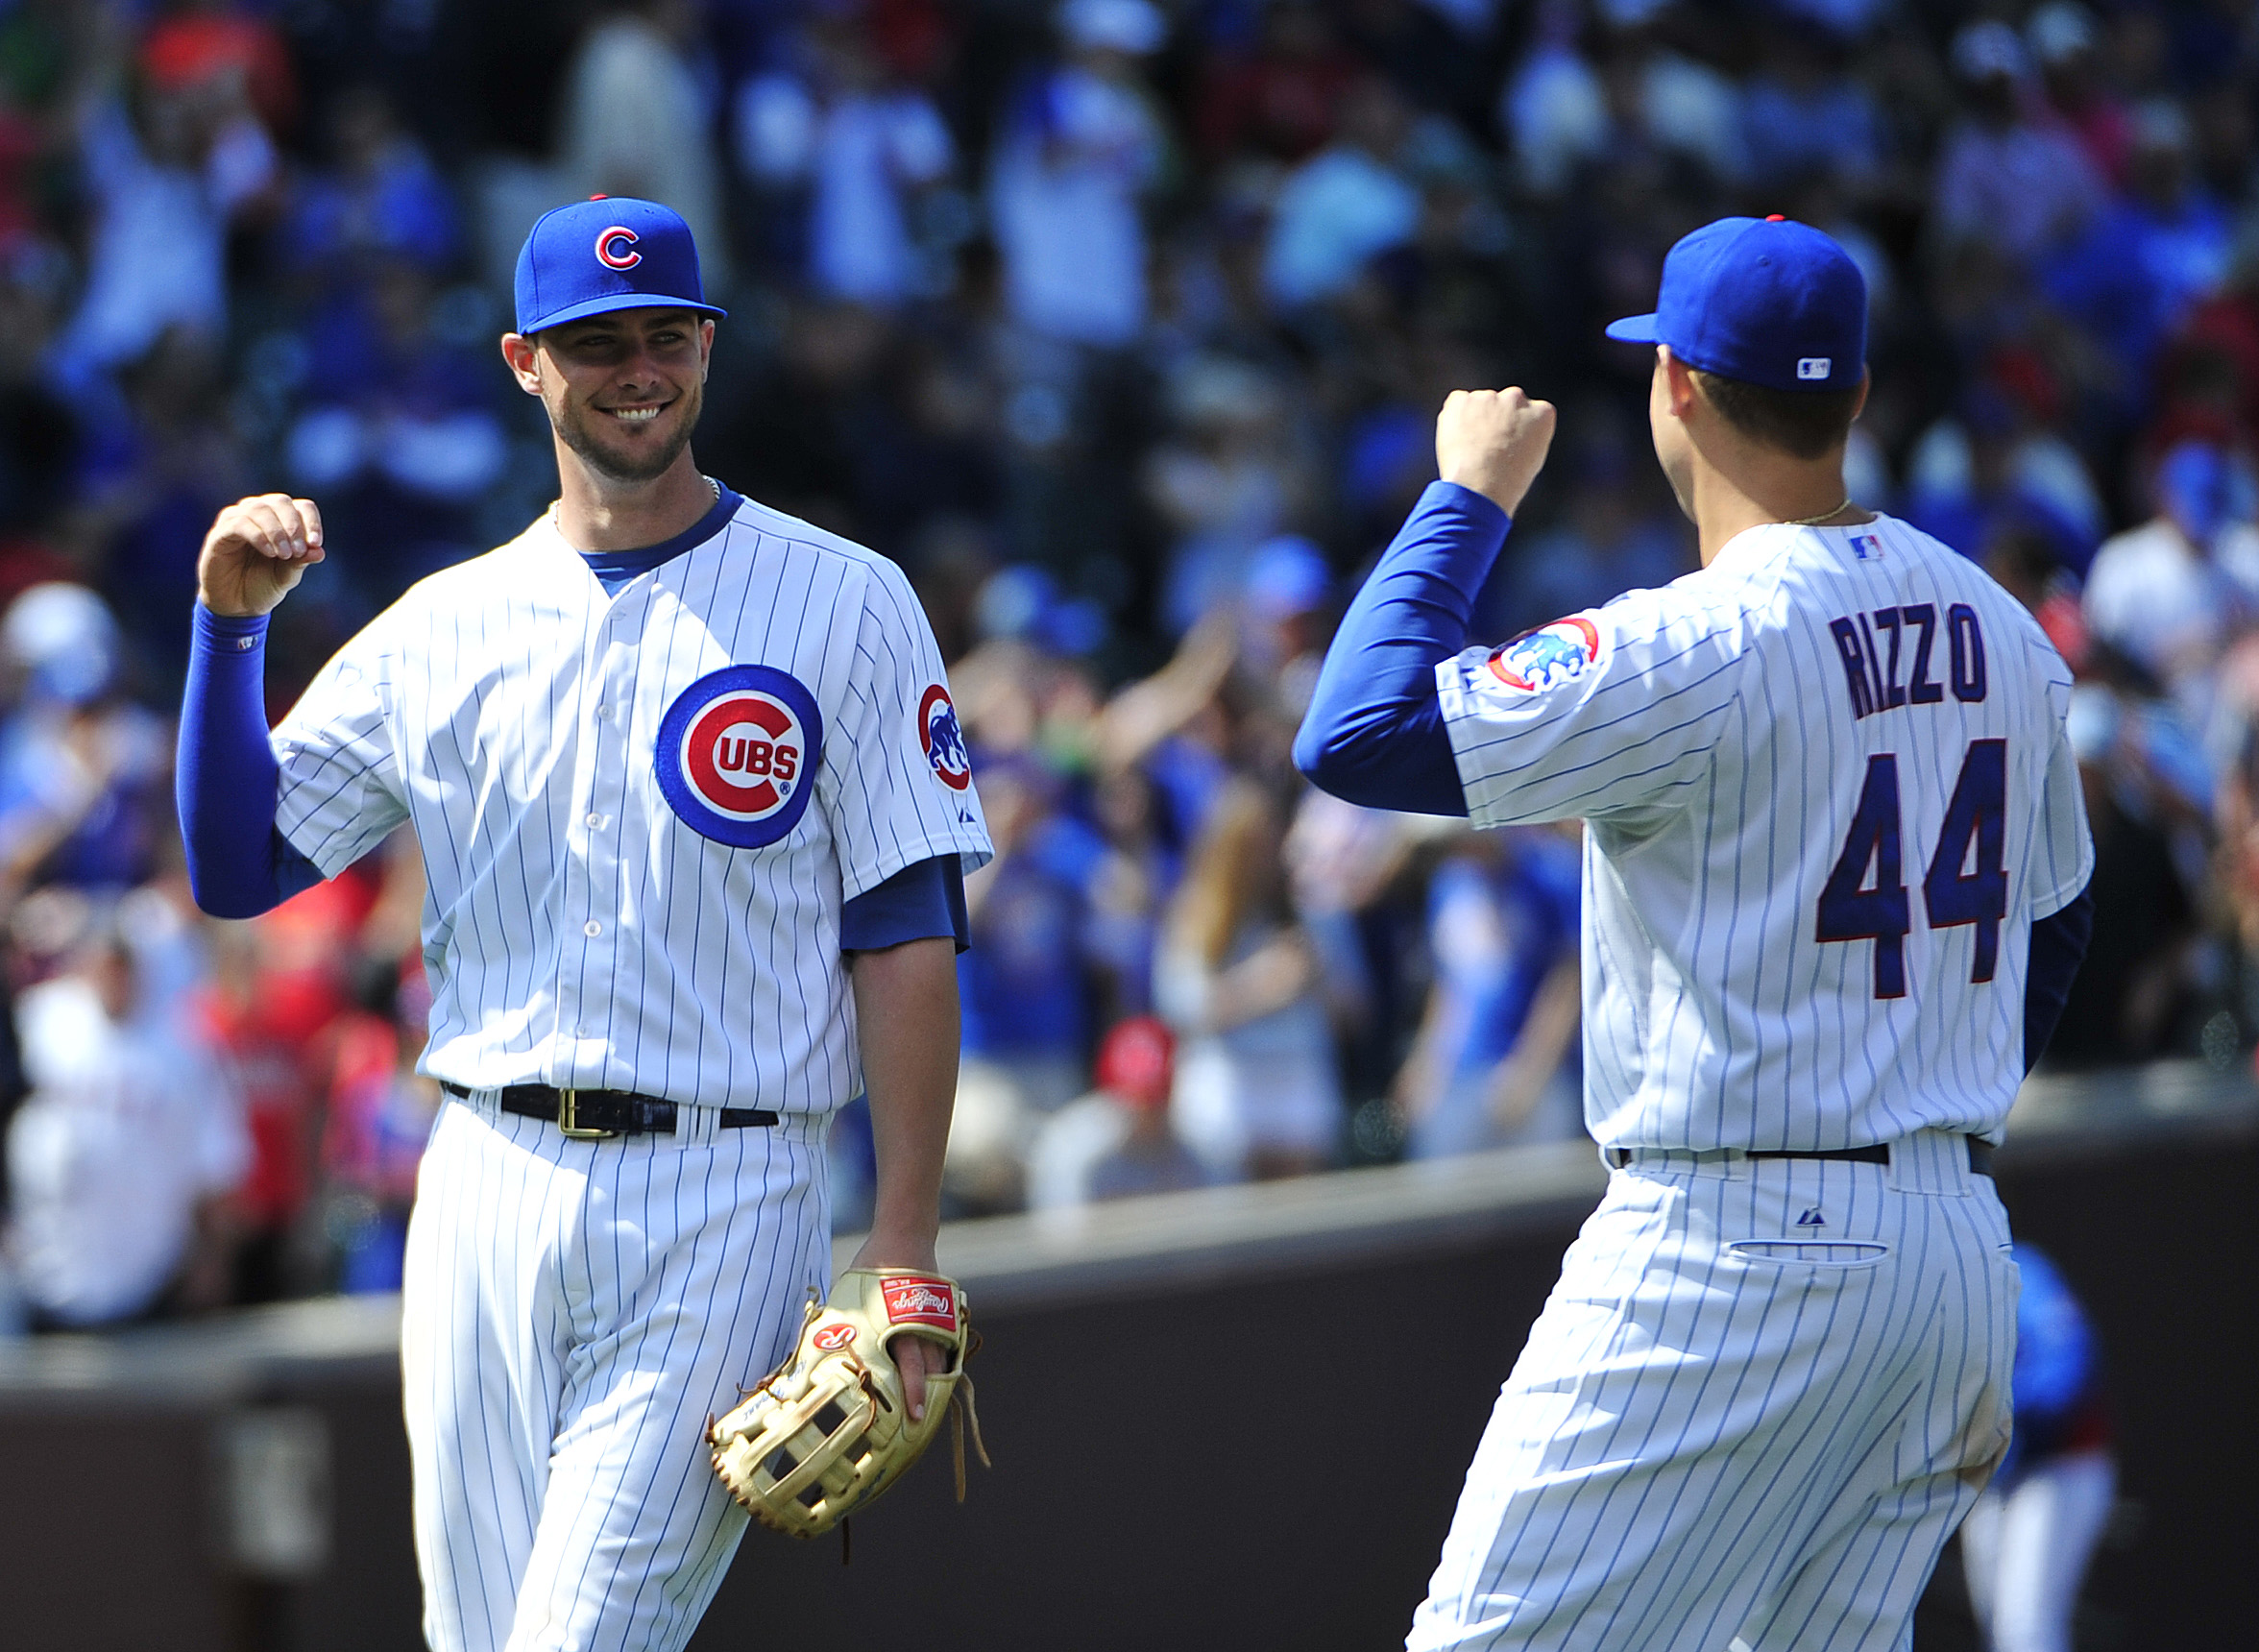 Chicago Cubs third baseman Kris Bryant, left, and first baseman Anthony Rizzo (44) celebrate the Cubs' 7-4 win against the St. Louis Cardinals in the first baseball game of a doubleheader, Tuesday, July  7, 2015, in Chicago. (AP Photo/David Banks)